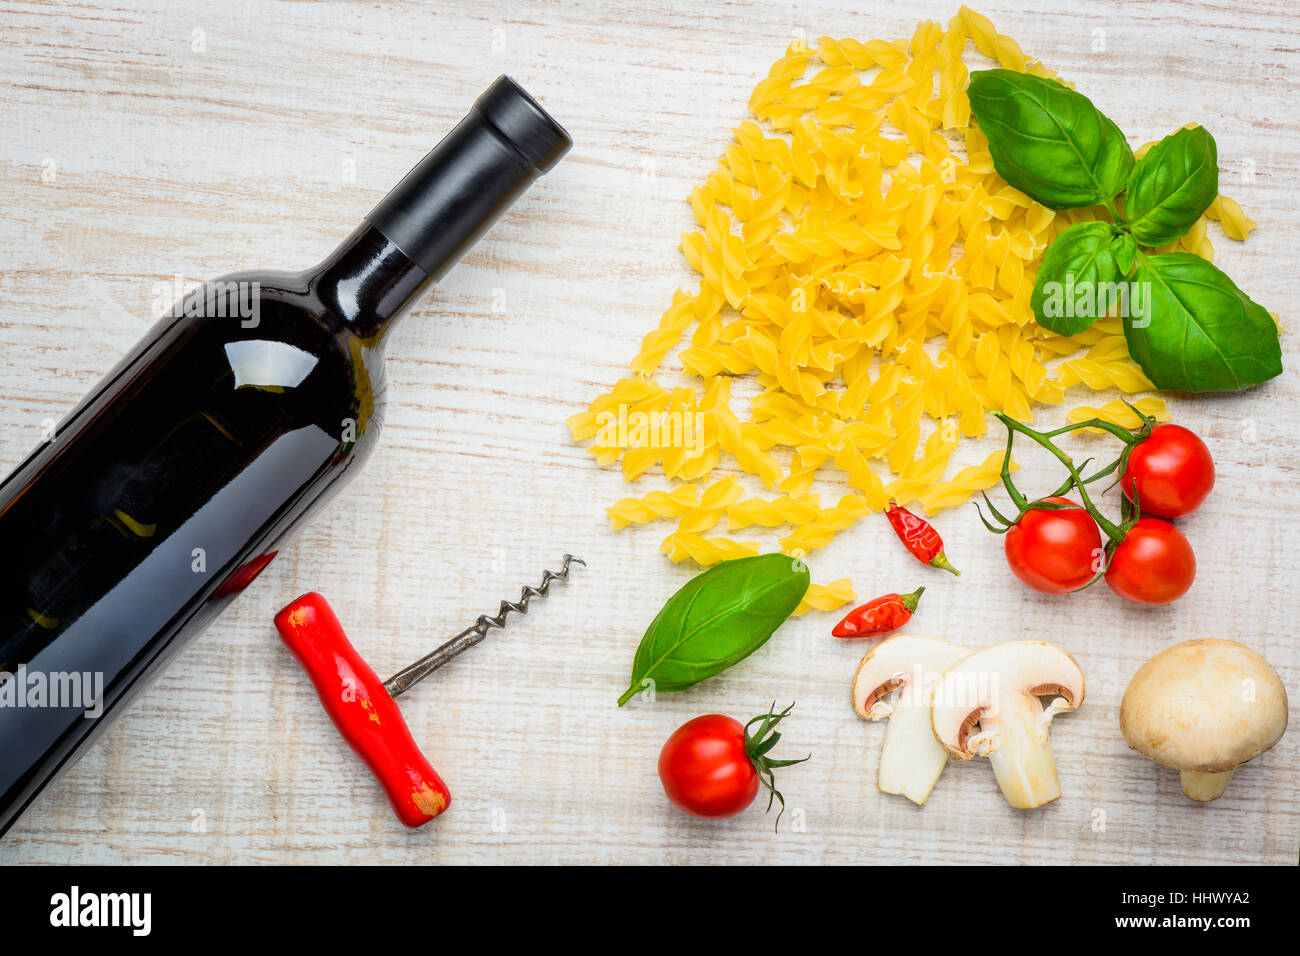 Bottle of red wine with corkscrew and Fusilli doppia rigatura Pasta and fresh vegtables - Stock Image